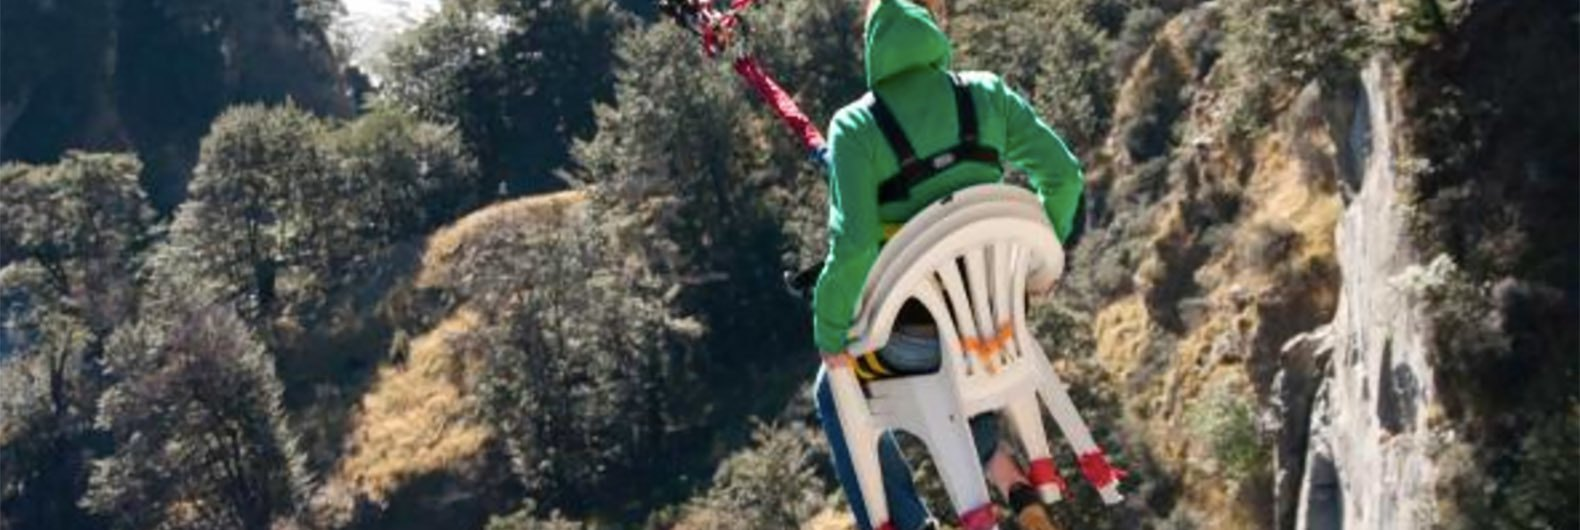 Ride The Chair Of Death On World S Highest Cliff Drop Swing